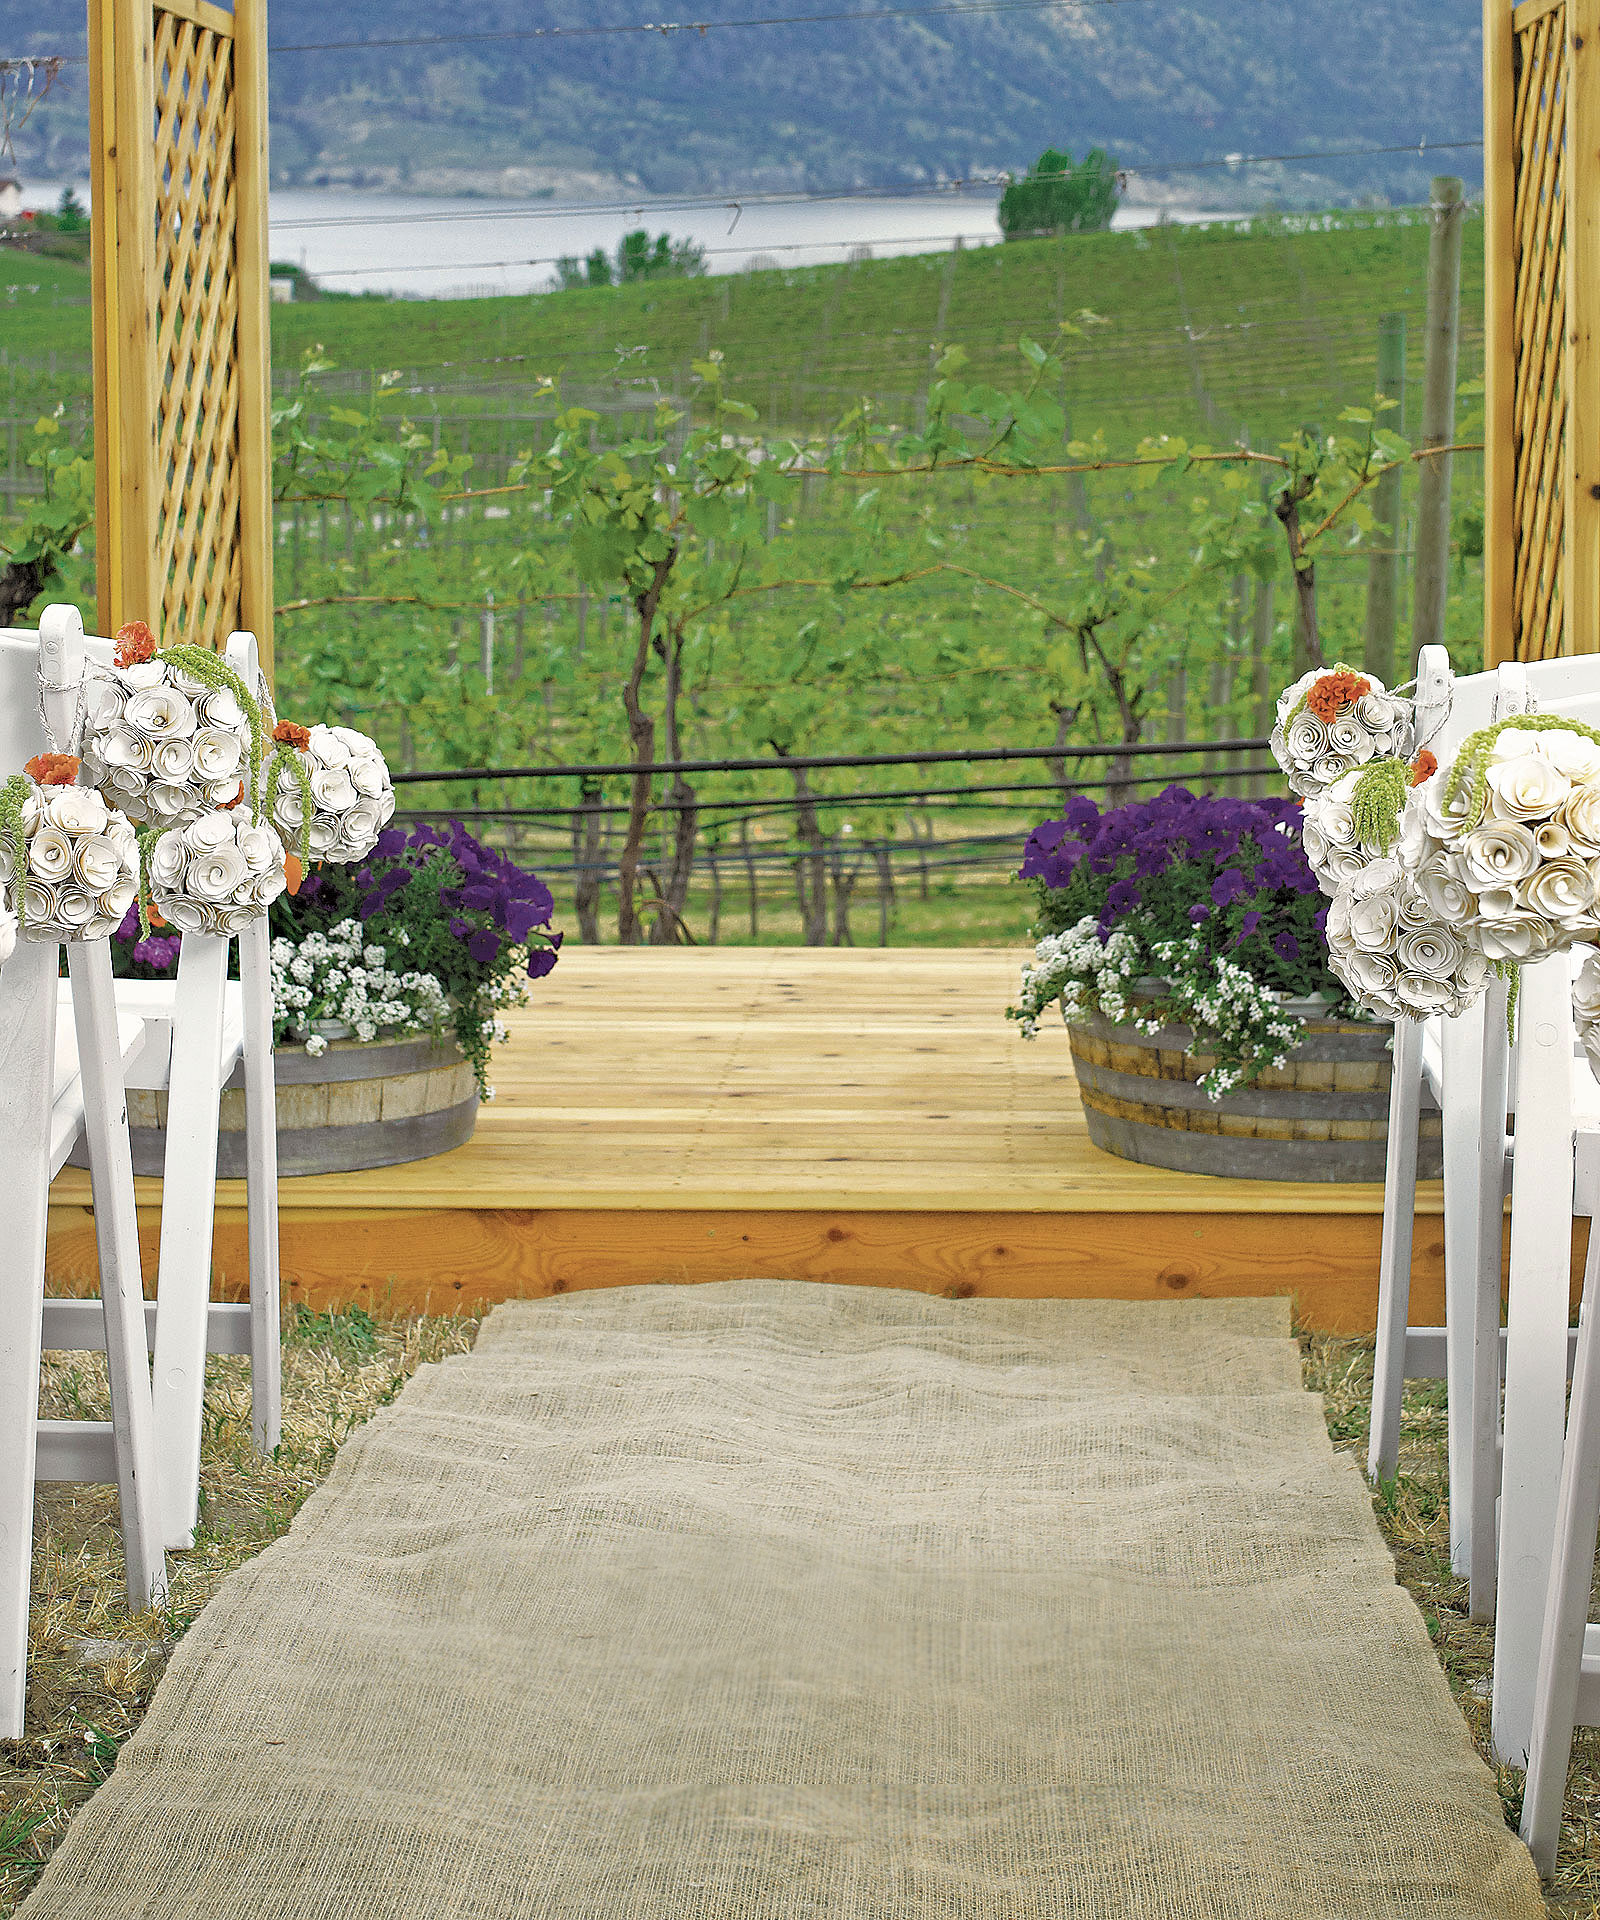 Burlap Outdoor Wedding Ceremony Aisle Runner Natural Eco